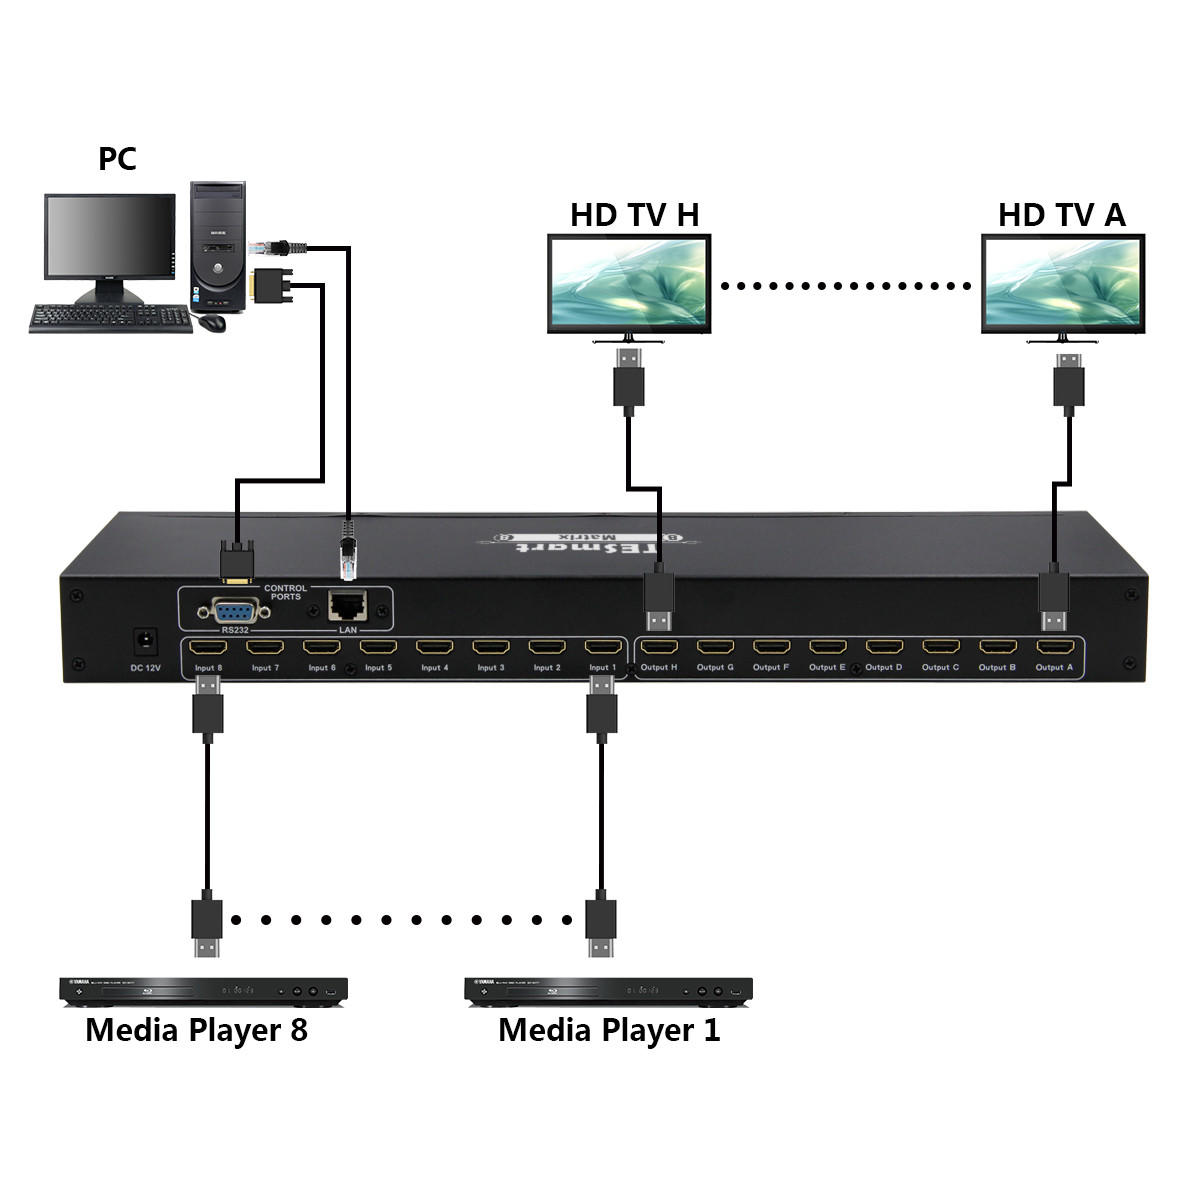 8x8 HDMI Matrix for the Audio and Video-2